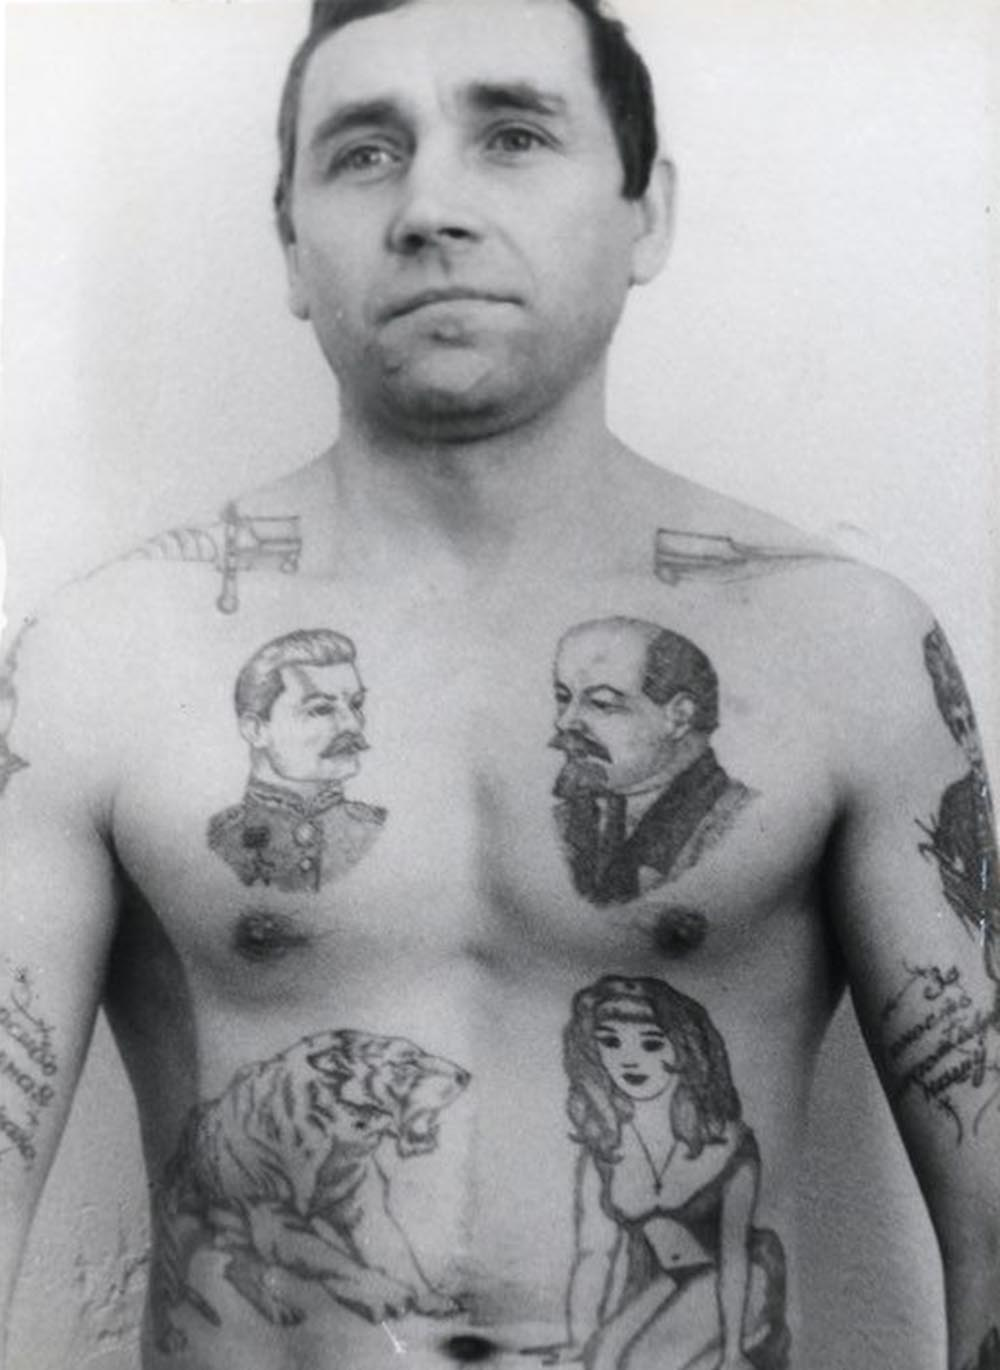 Text on the arm reads 'Thank you Dear Motherland for my ruined youth.' A dagger through the neck shows that a criminal has committed murder in prison and is available to hire for further killing. The drops of blood can signify the number of murders committed. Lenin is held by many criminals to be the chief 'pakhan' (boss) of the Communist Party. The letters BOP, which are sometimes tattooed under his image, carry a double meaning: The acronym stands for 'Leader of the October Revolution' but also spells the Russian word 'VOR' (thief).